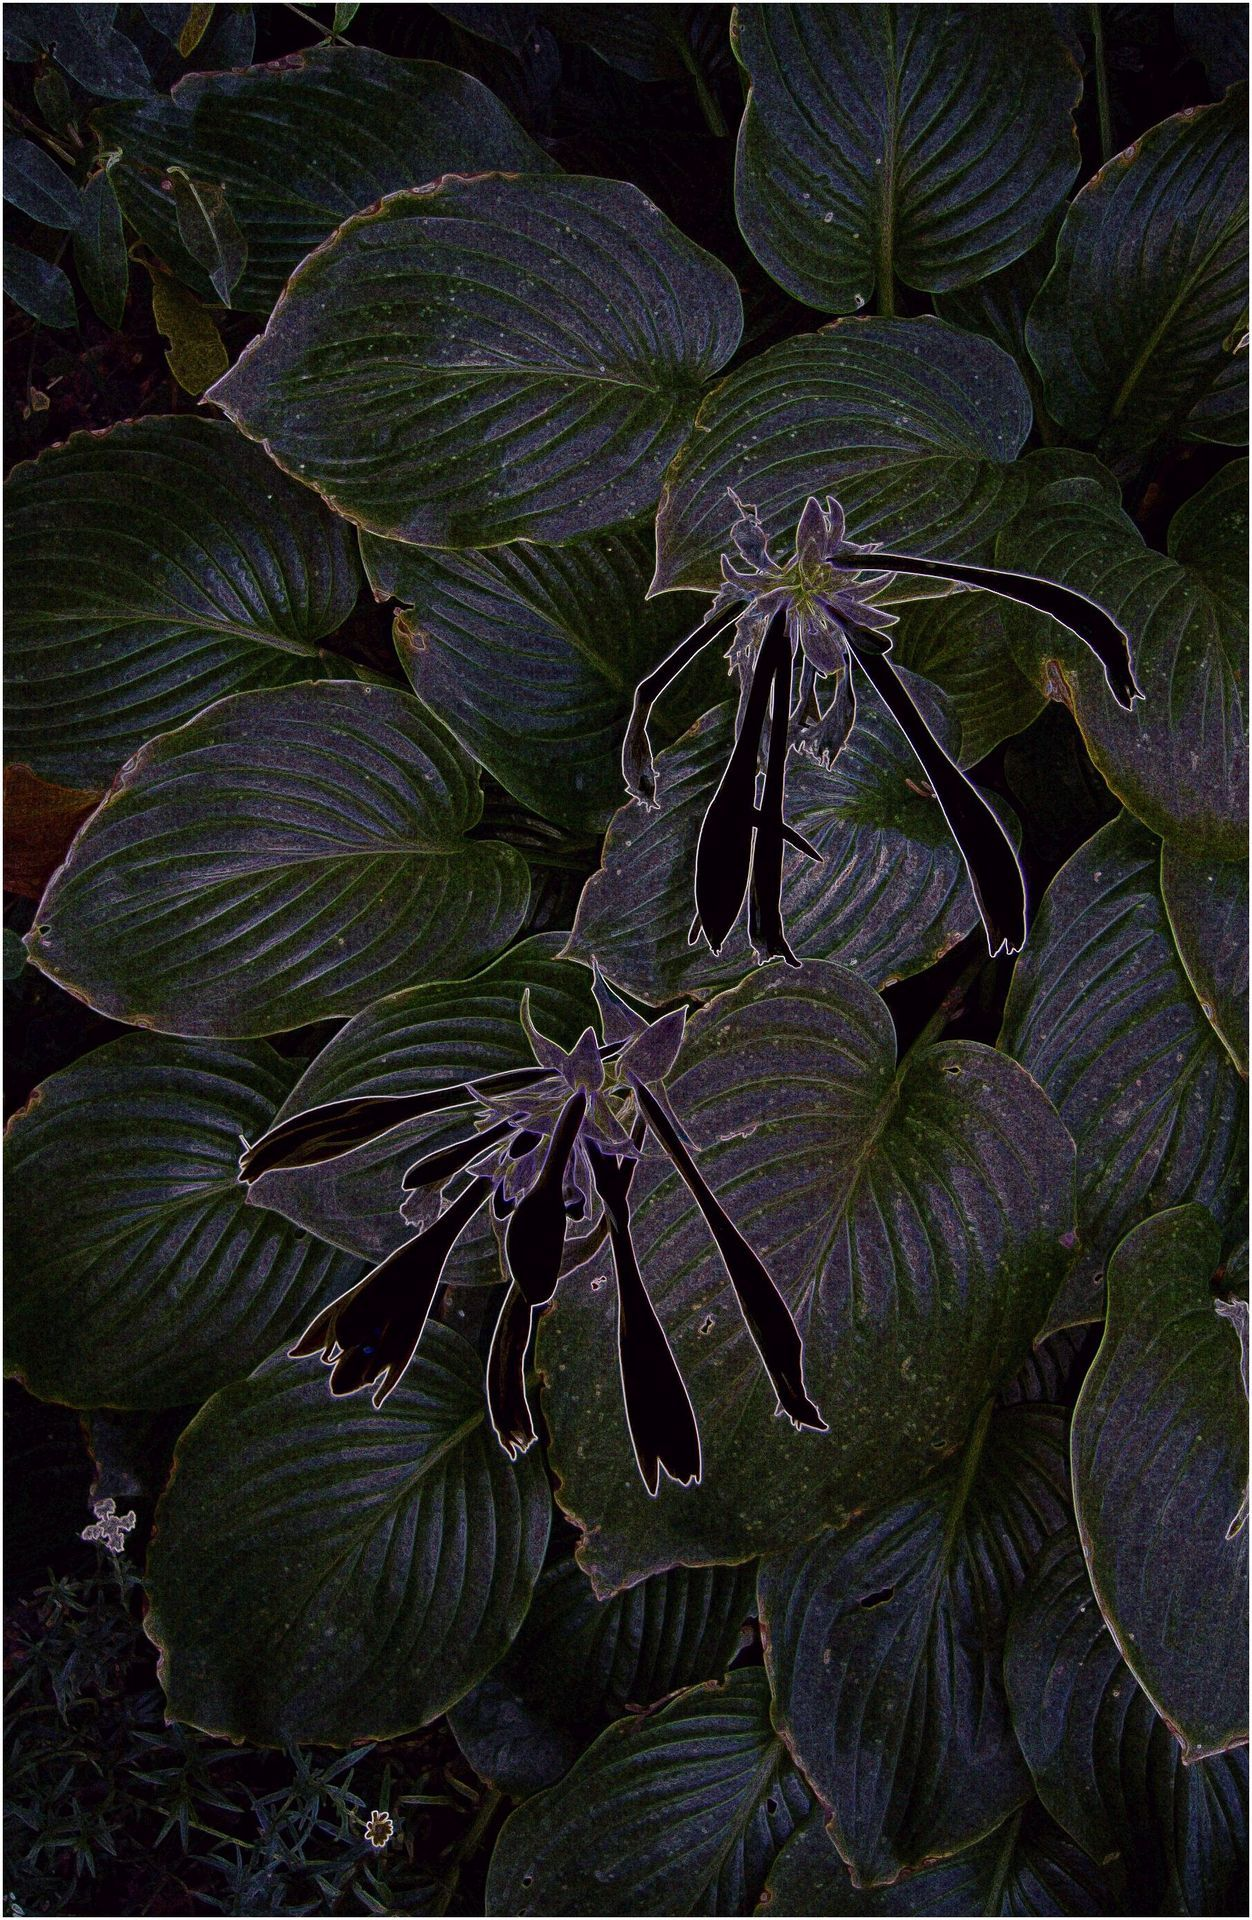 By yama-bato Ming Treasure (Hosta) 9.04.12